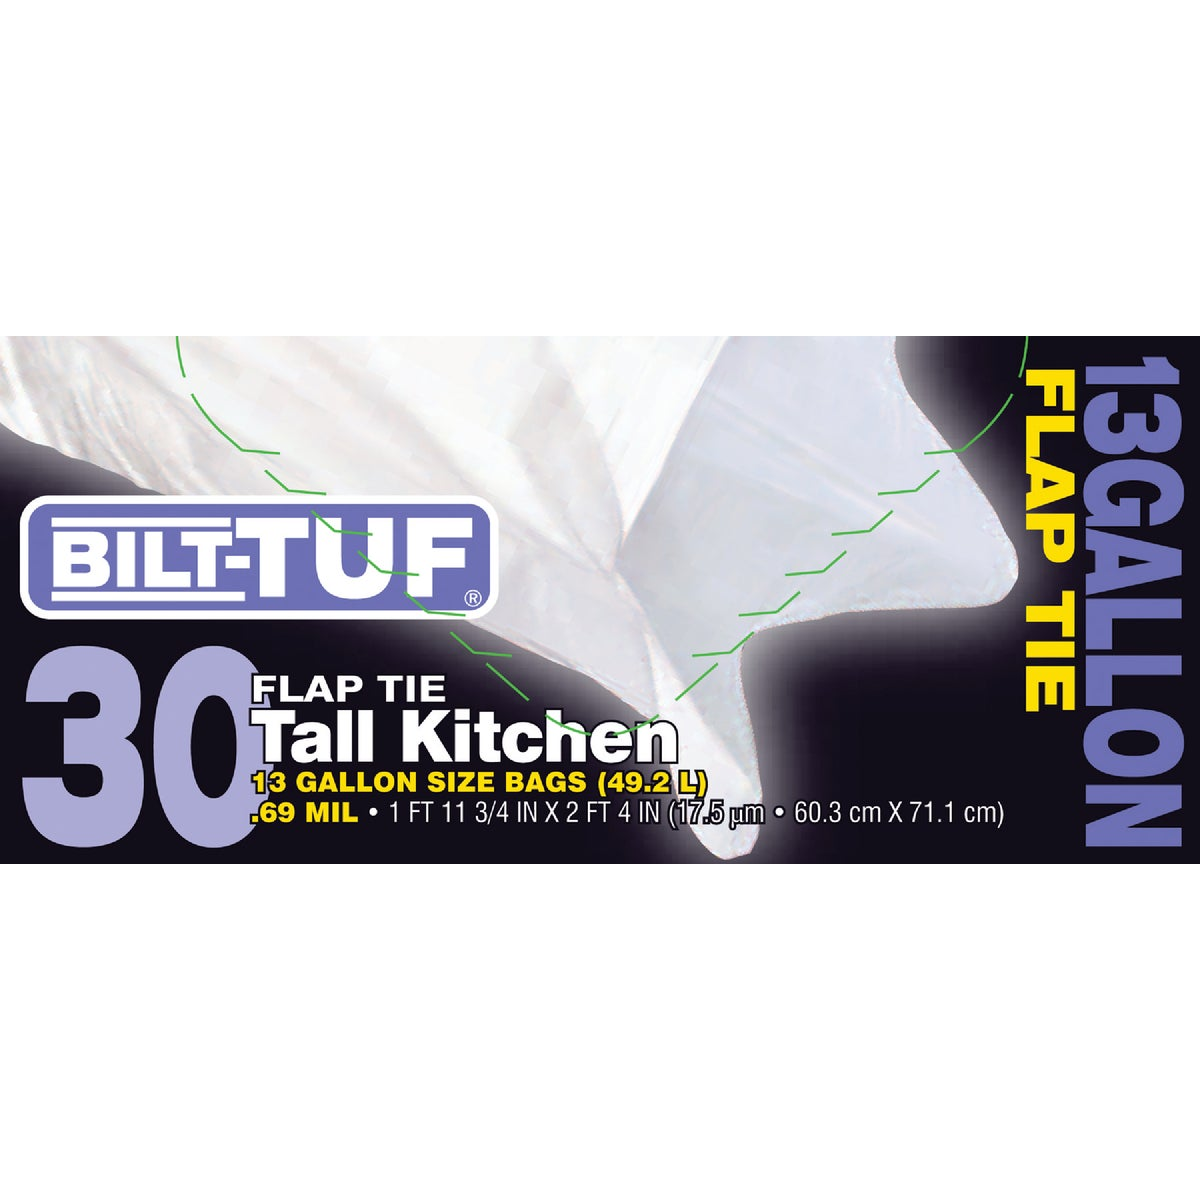 KITCHEN BAG 13G/30CT - GKL032570 by Presto Products